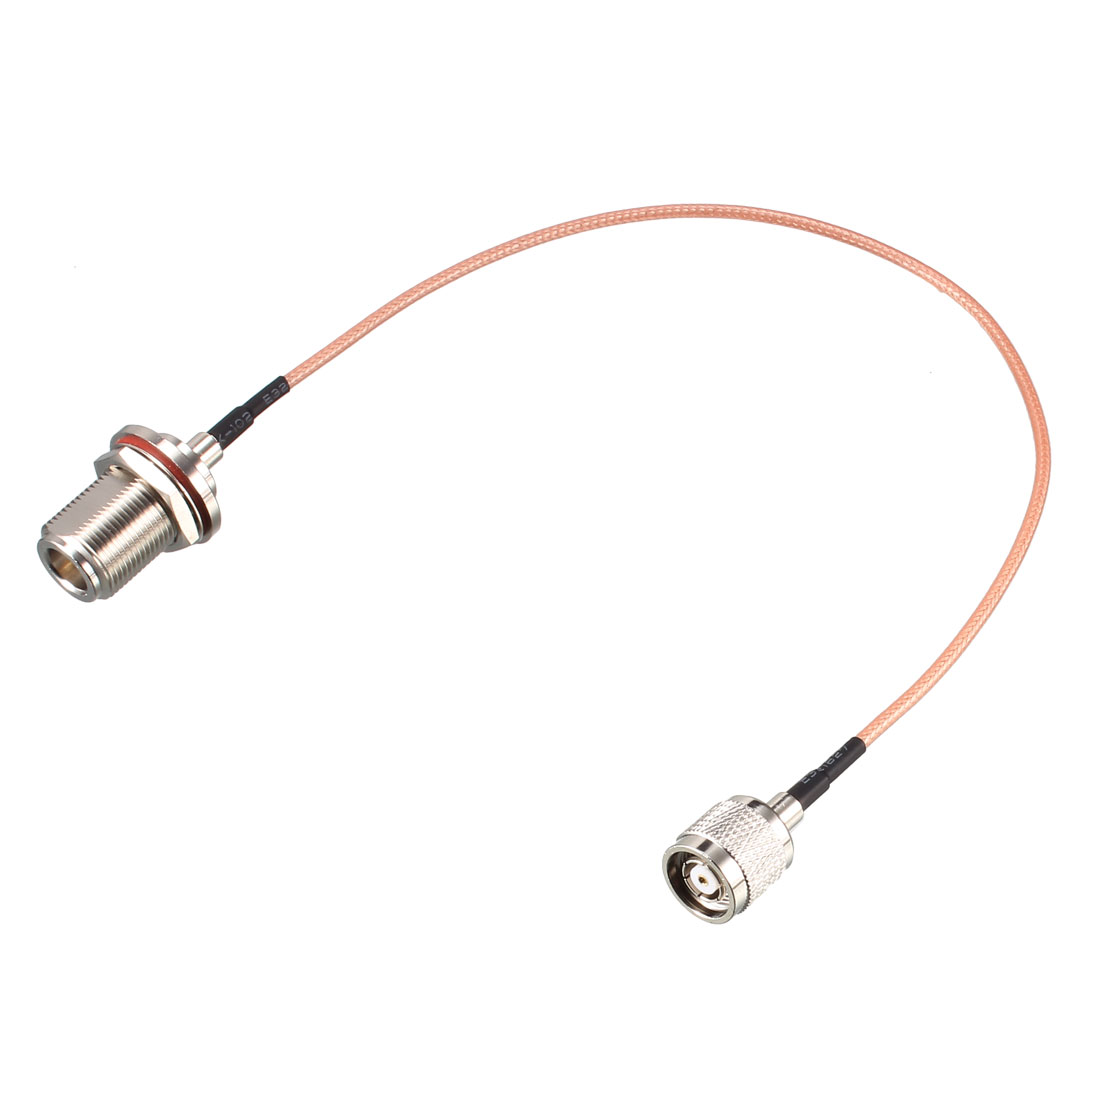 RP-TNC Male to N-Type Female Bulkhead RG316 Coax Cable 1 ft